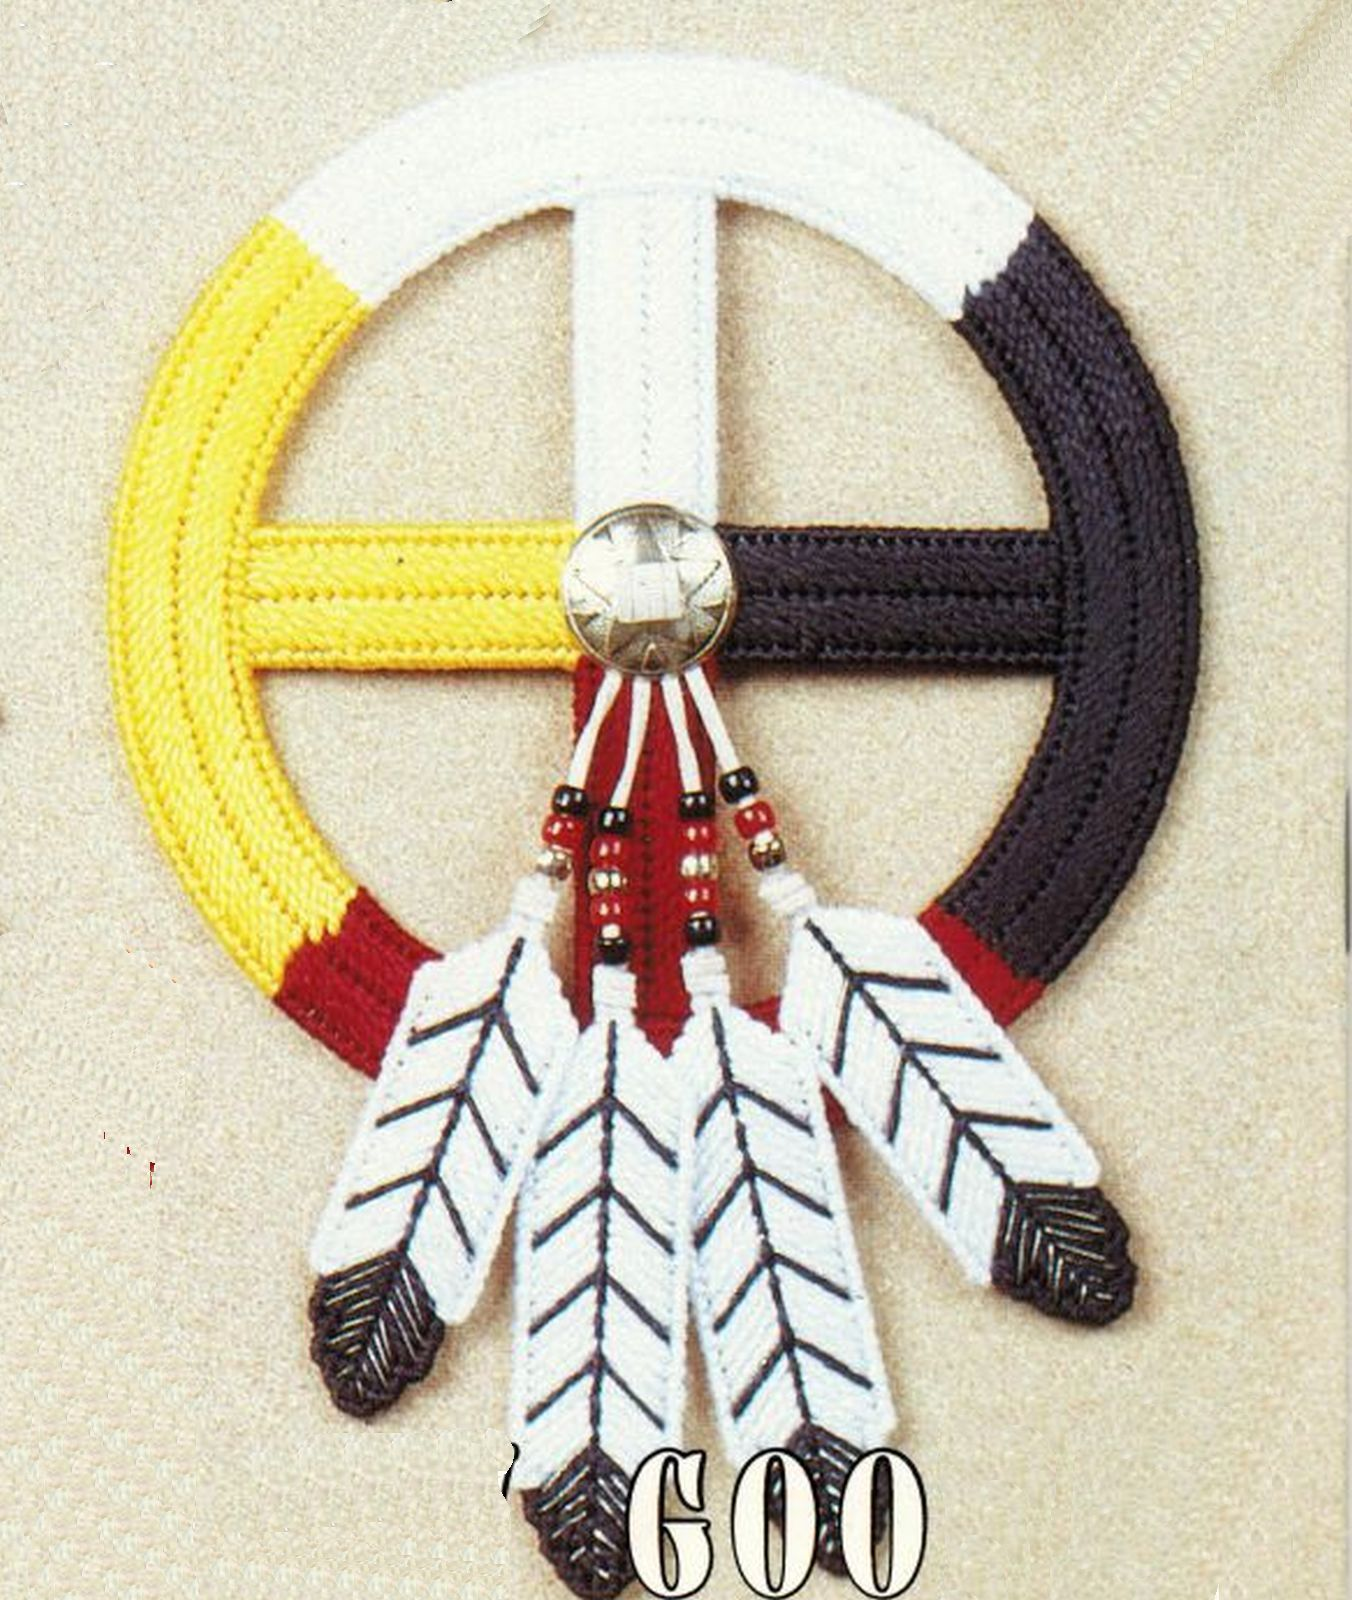 Plastic Canvas Native American Indian Headdress Dreamcatcher Mandella Patterns With Images Plastic Canvas Patterns Plastic Canvas Crafts Dream Catcher Patterns,Drawing Diy Phone Case Design Black And White